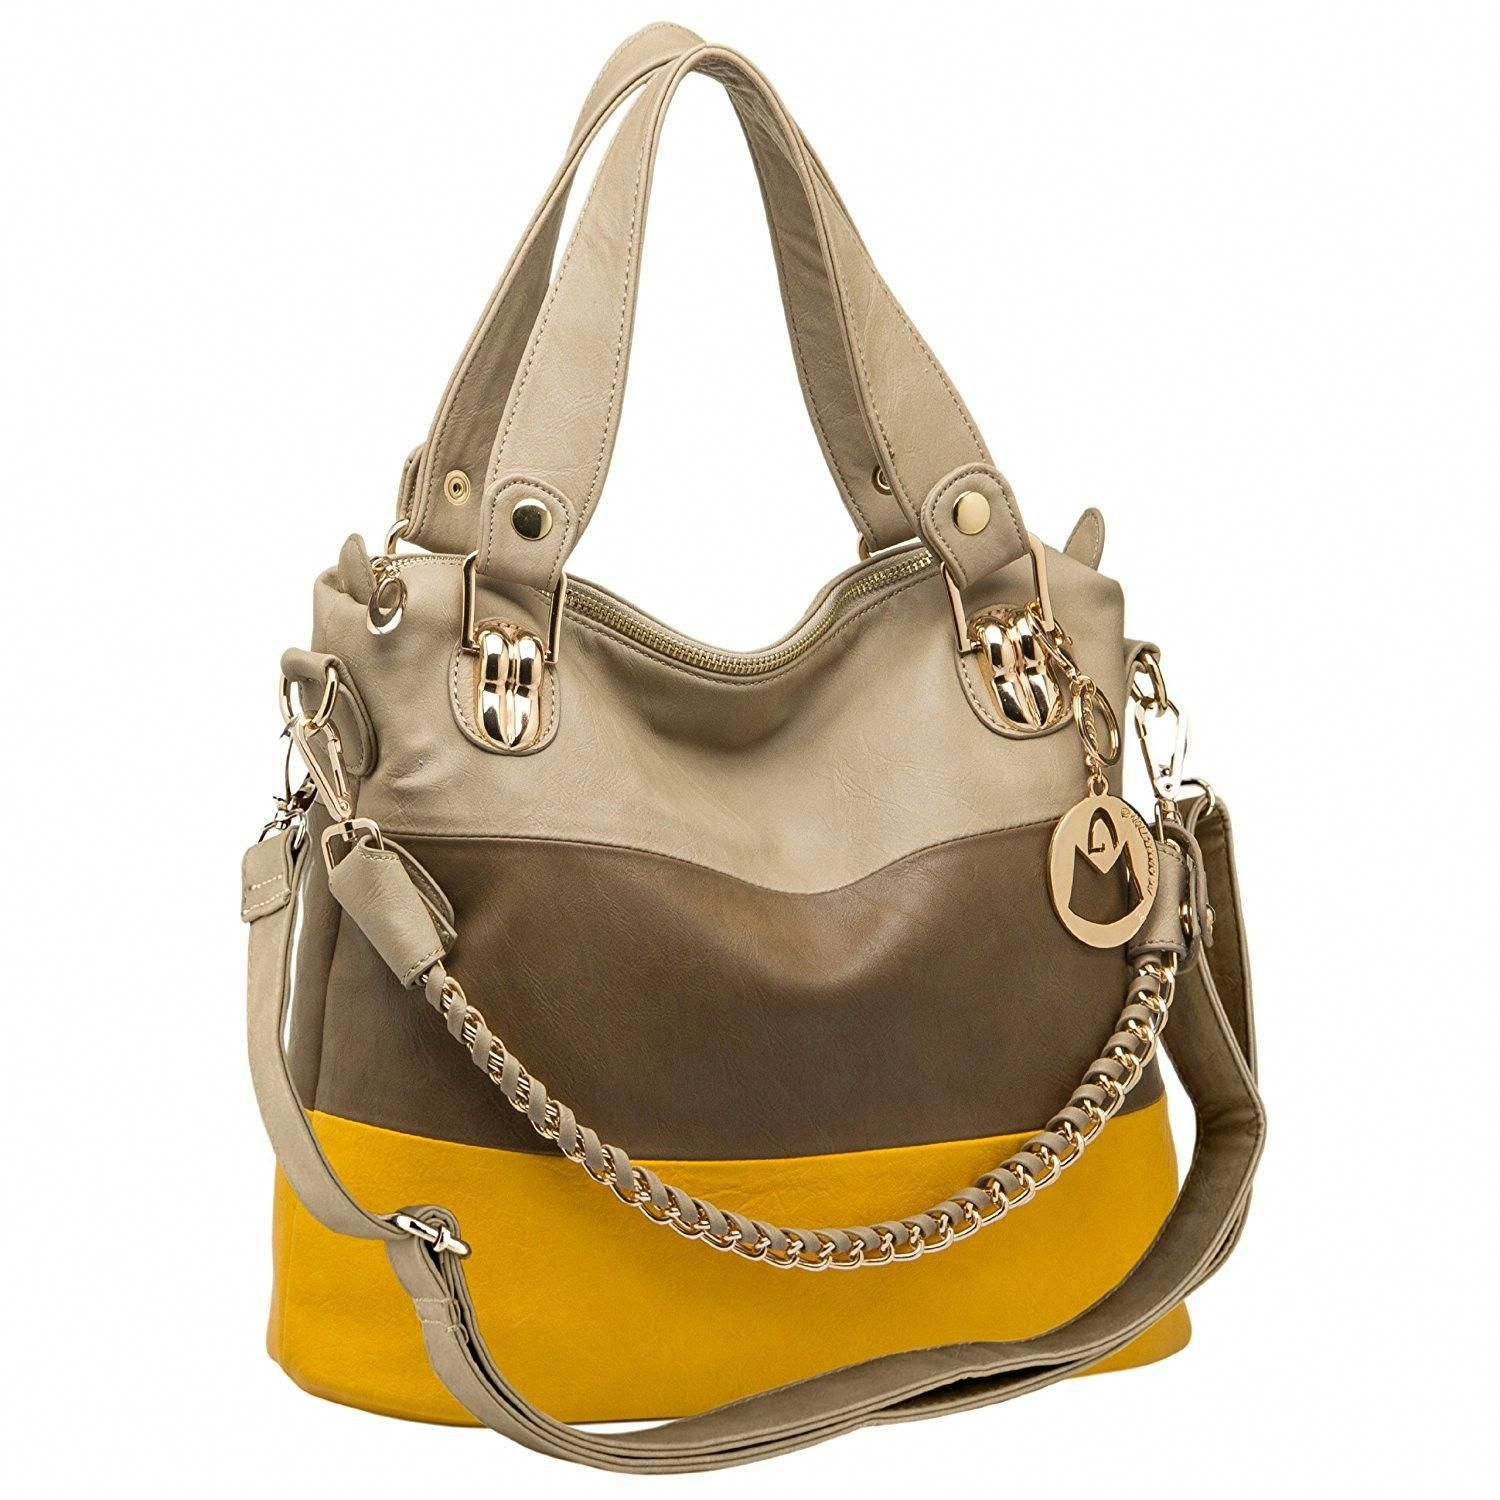 Hobo Bag Hobohandbags Vegan Purse Handbags Leather Hobo Bag Leather Hobo Handbags